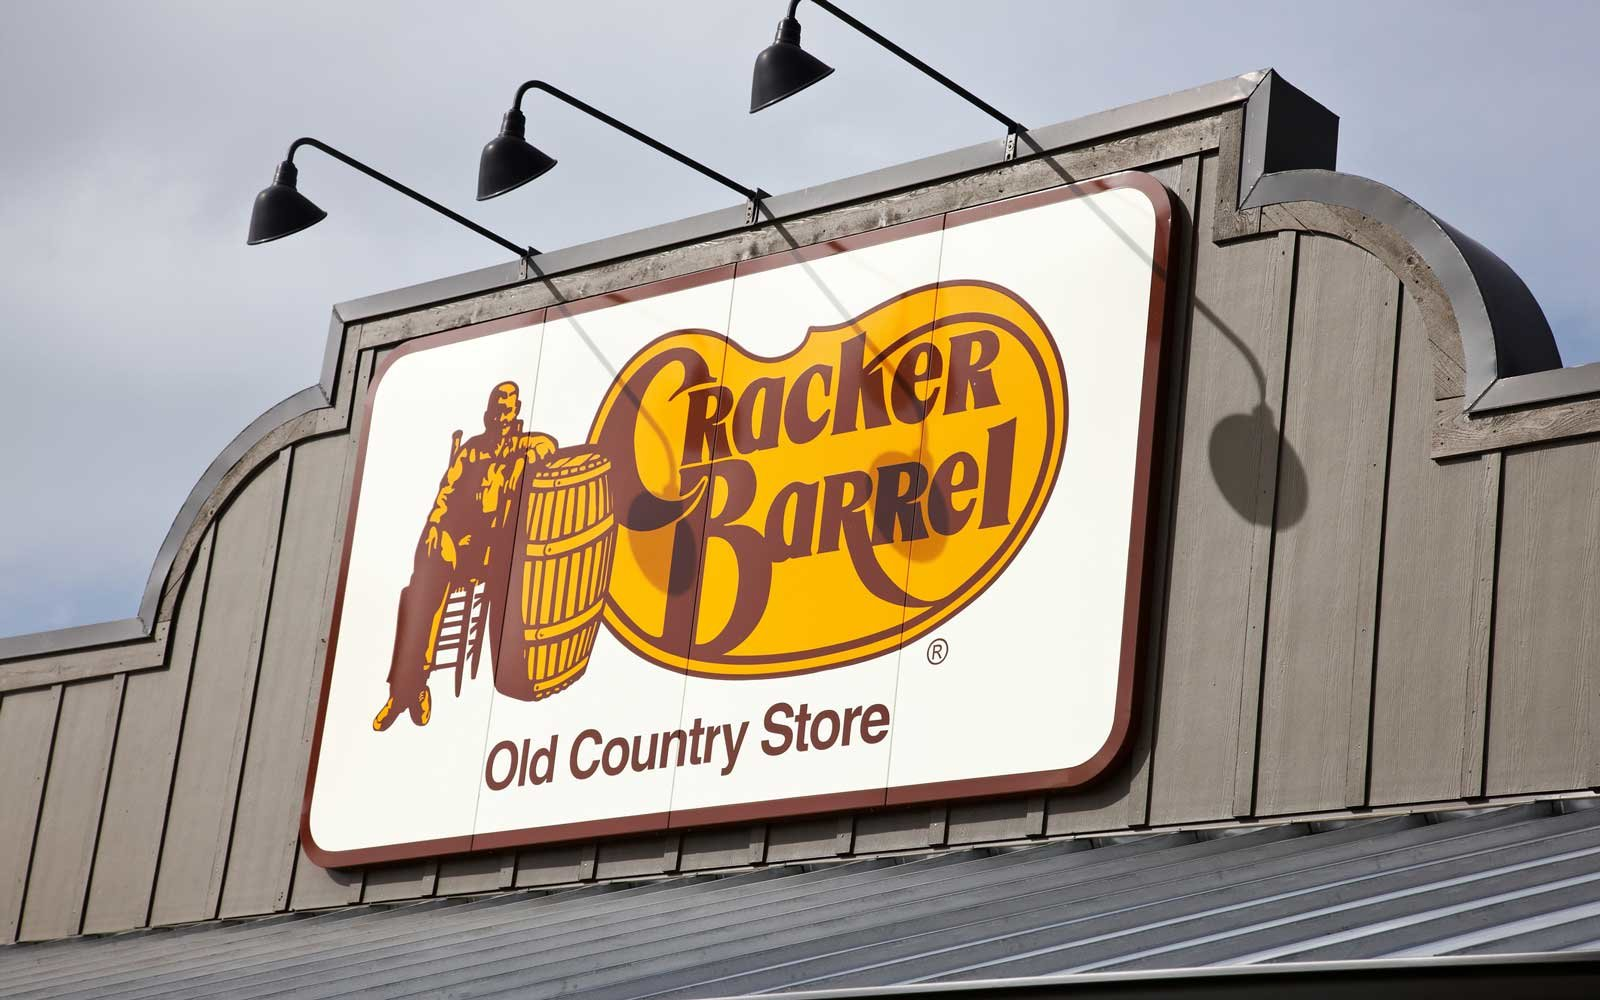 Cracker Barrel restaurant sign.